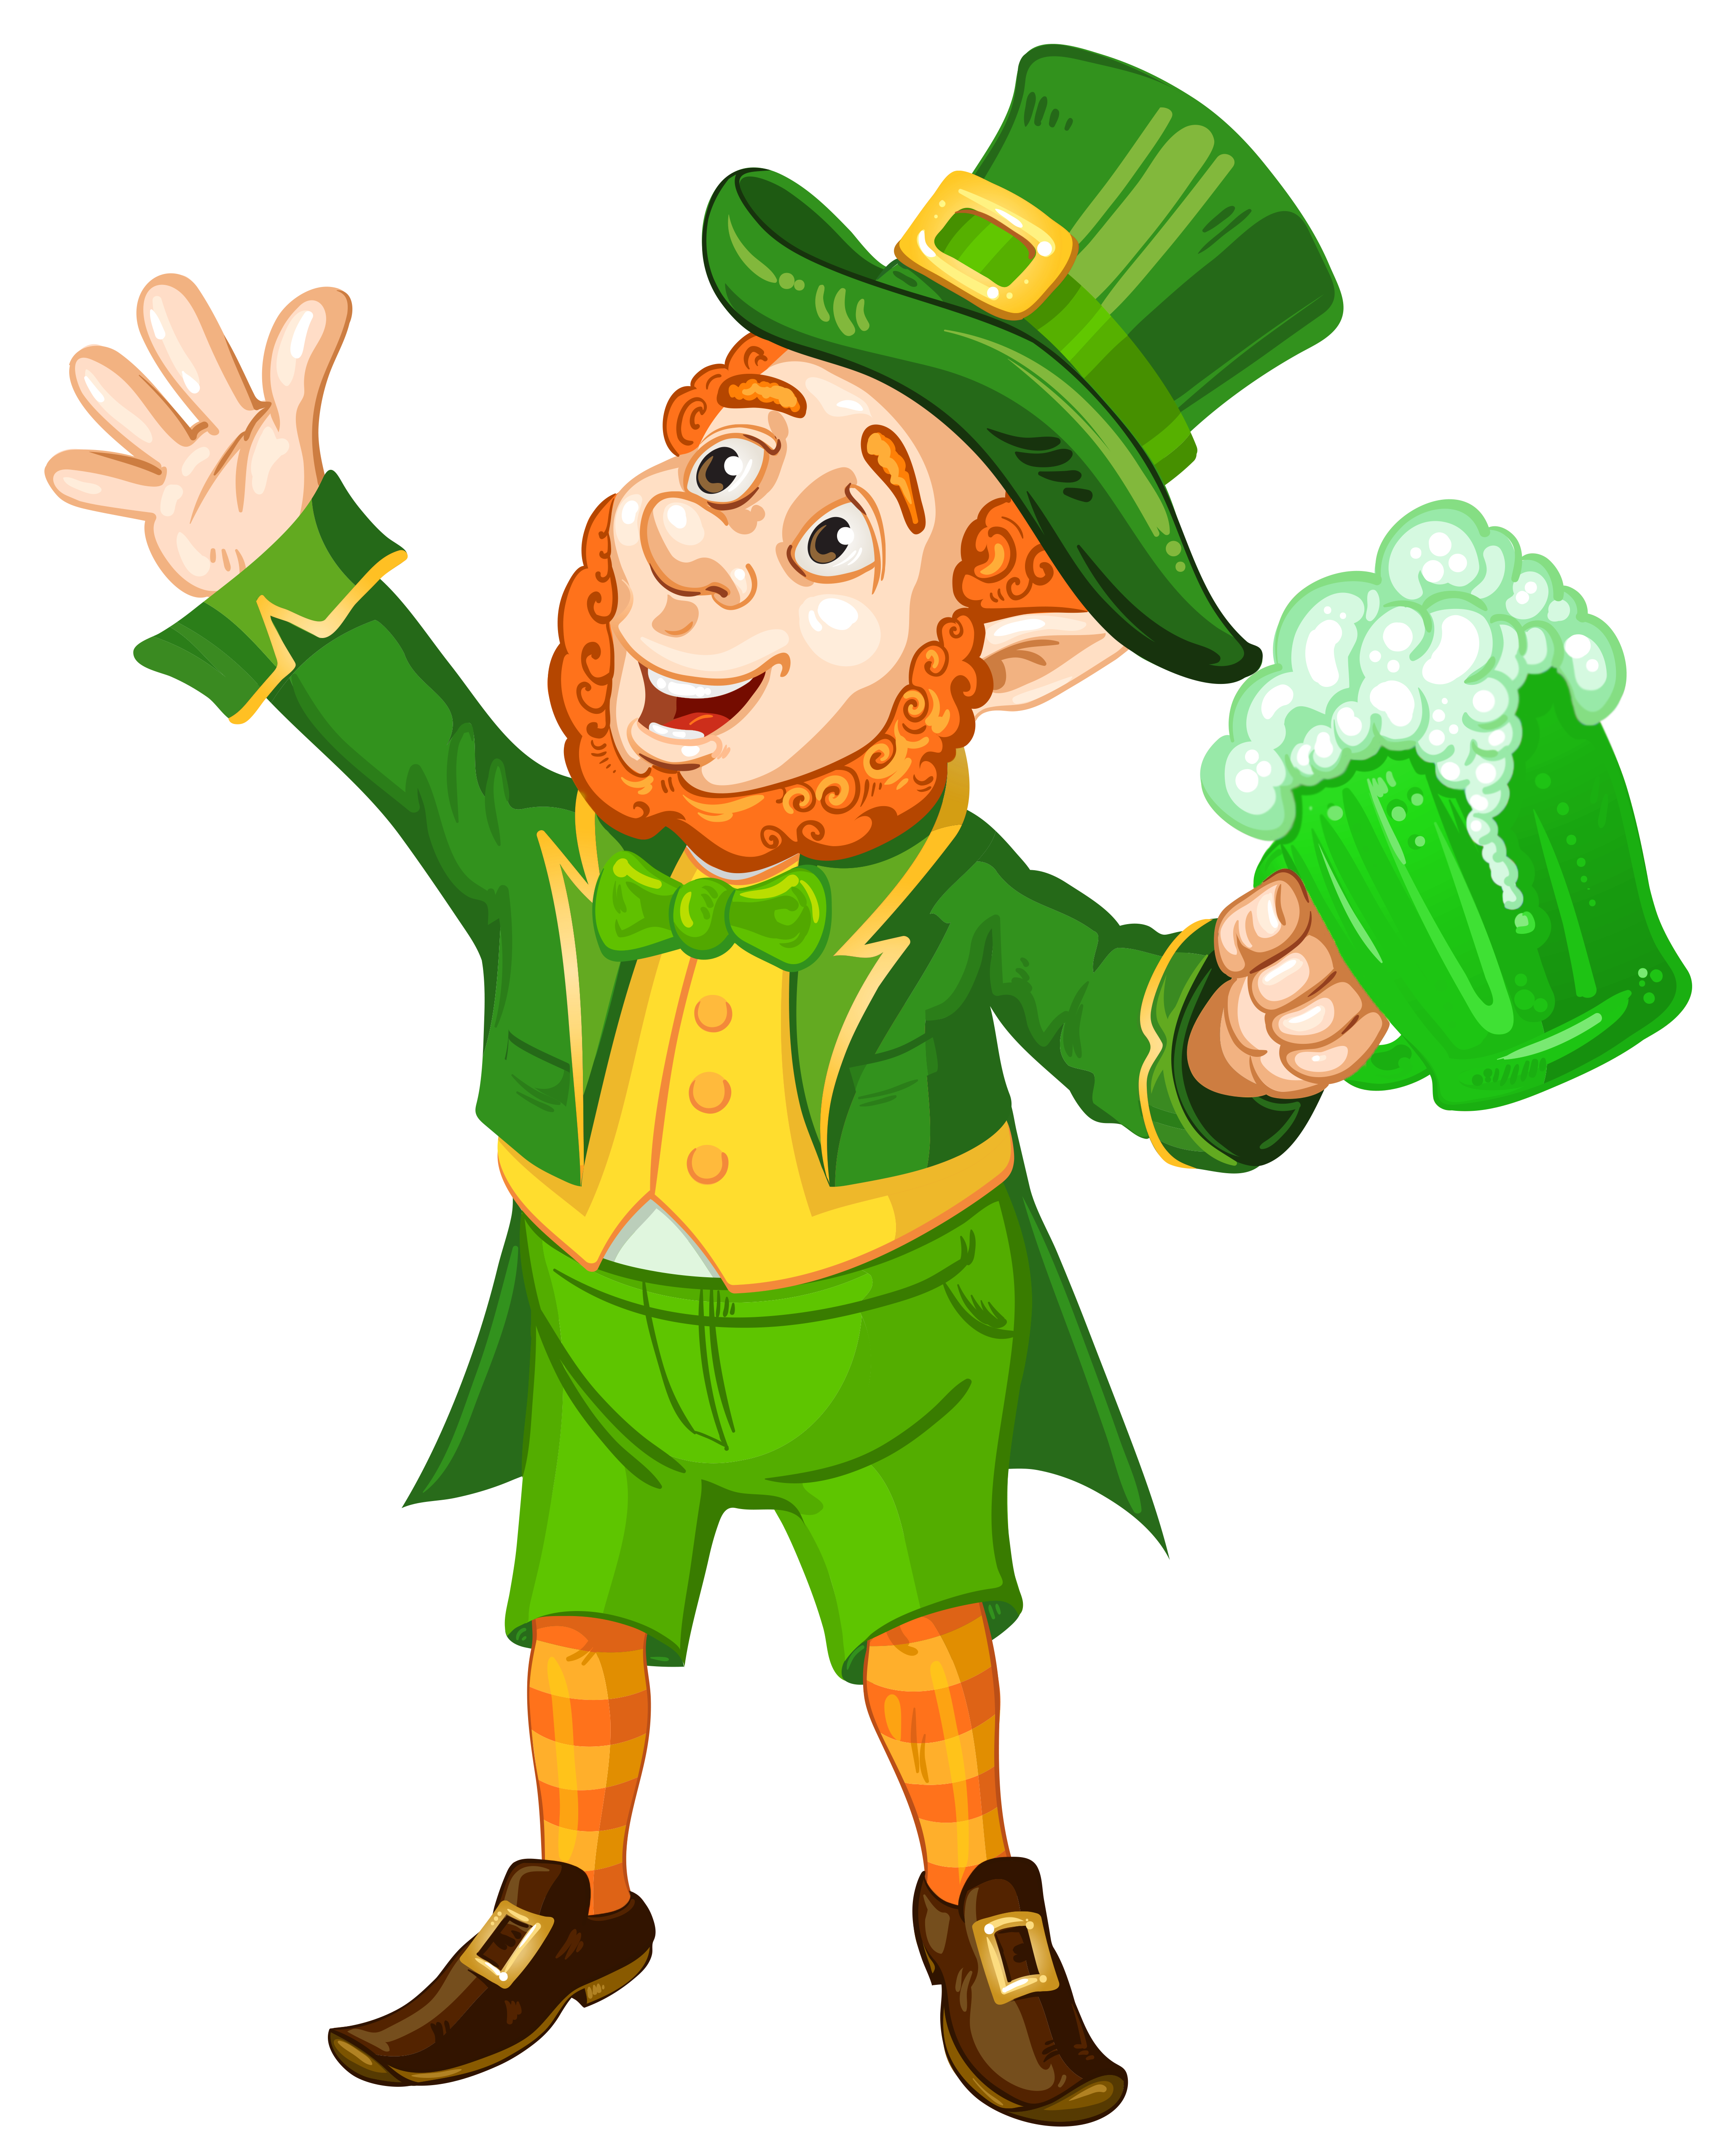 Leprechaun clipart png clipart transparent St Patrick Day Leprechaun with Green Beer Transparent PNG Picture ... clipart transparent